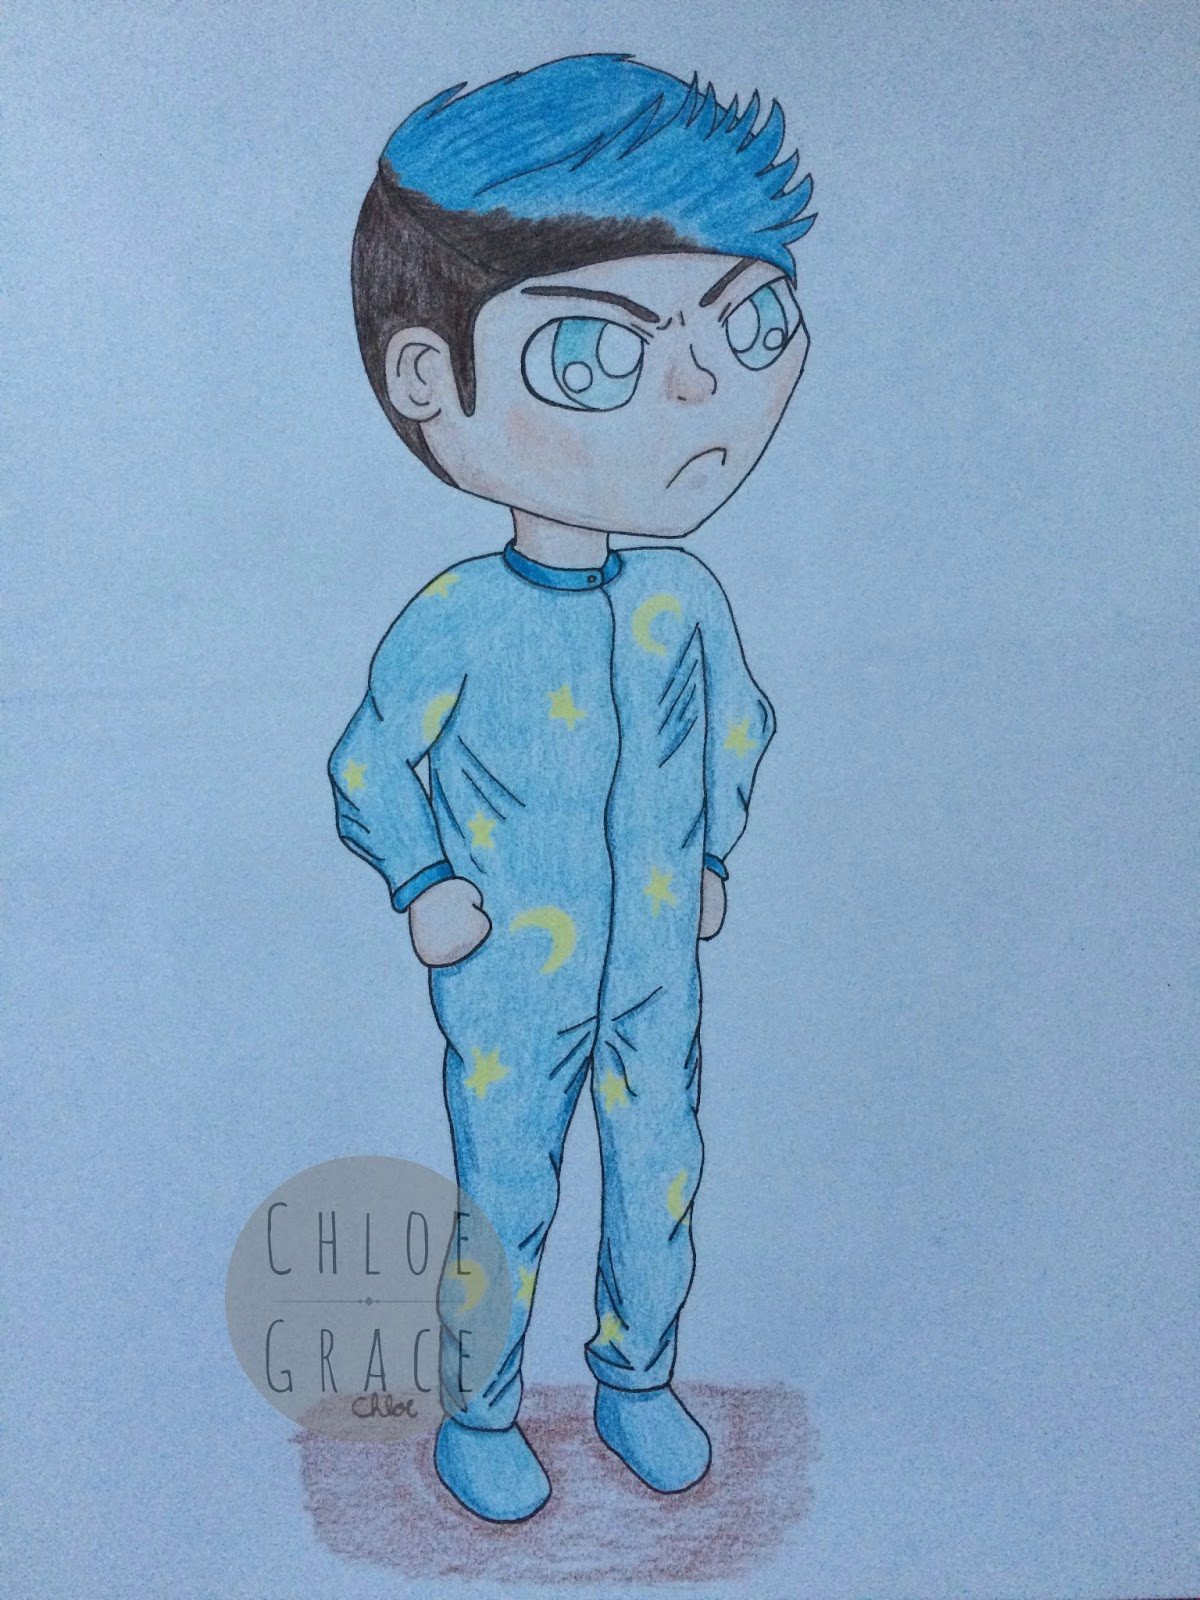 i love drawing fan art so much xd i watched dantdm play this game called among the sleep really cool game you should see it